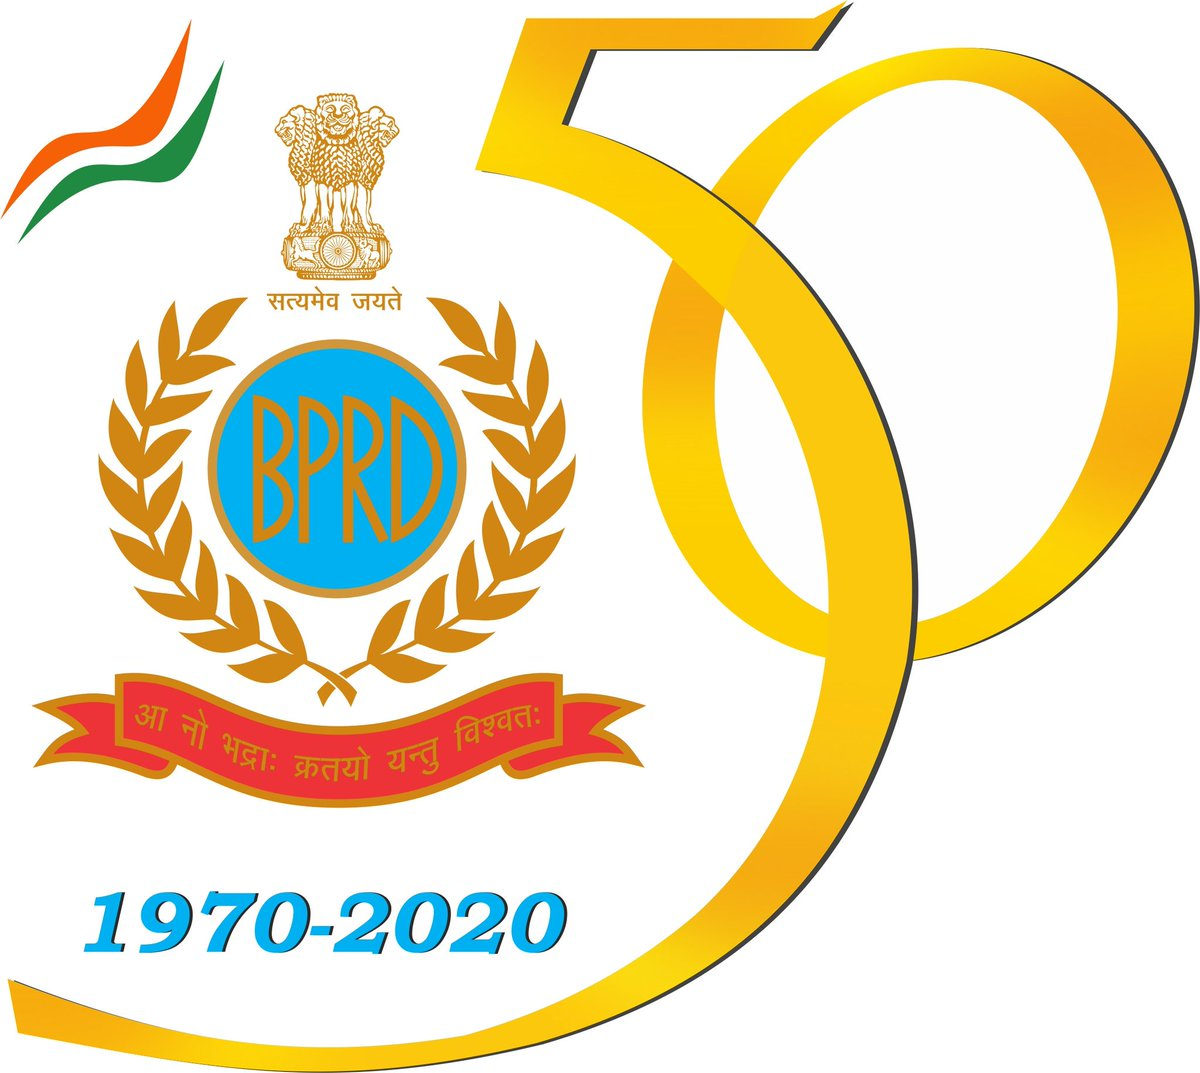 Bureau of Police Research and Development (BPR&D) celebrating its Golden Jubilee Anniversary today